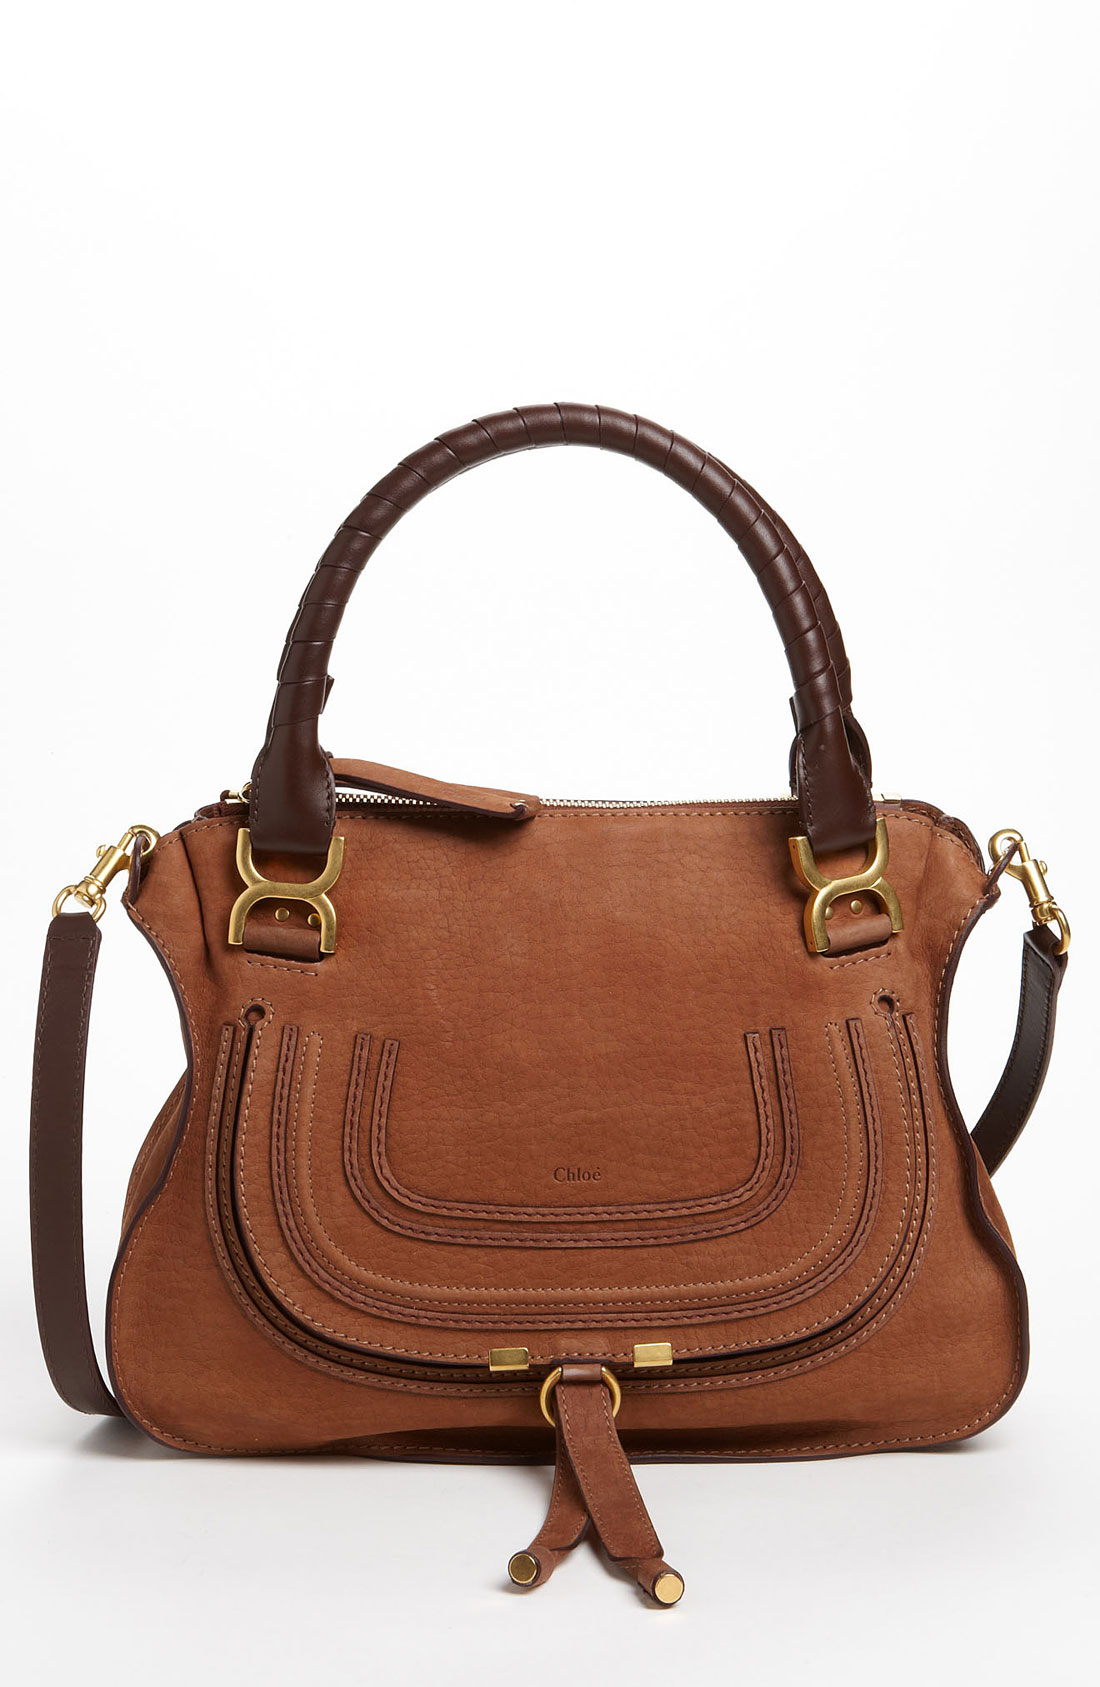 chlo marcie small nubuck leather shoulder bag in brown oak lyst. Black Bedroom Furniture Sets. Home Design Ideas